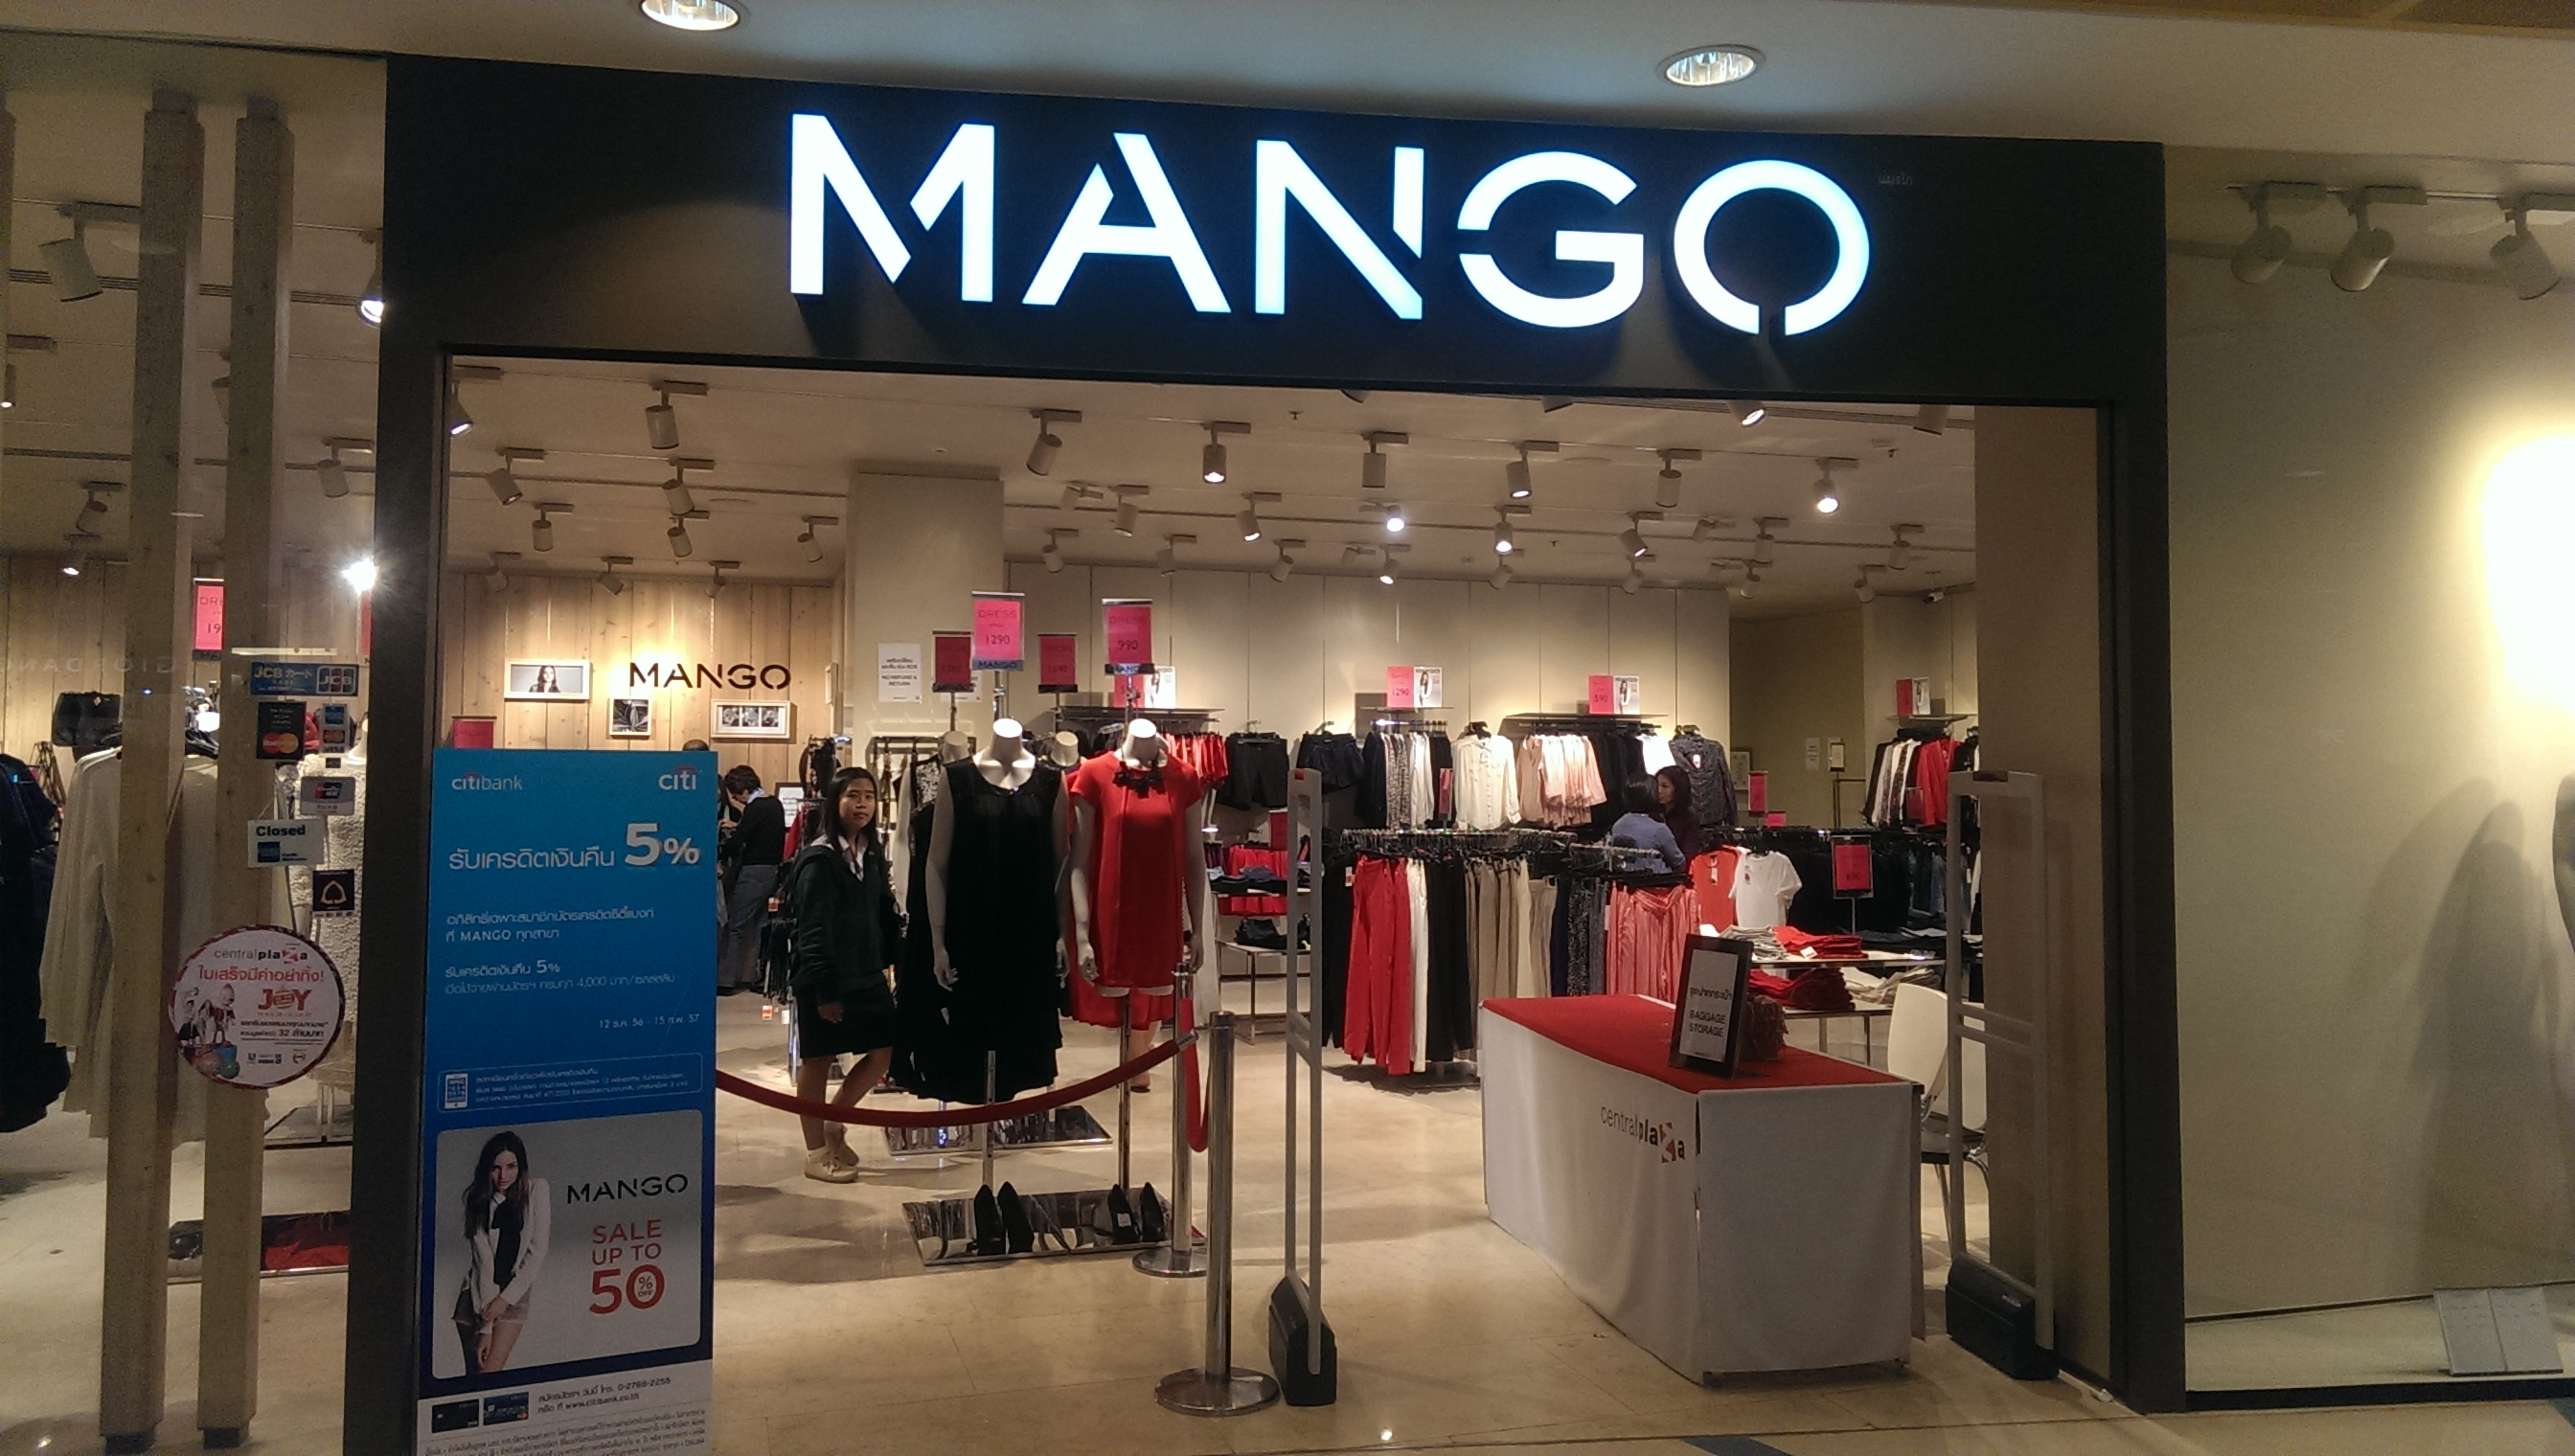 MANGO (Central Airport Plaza)